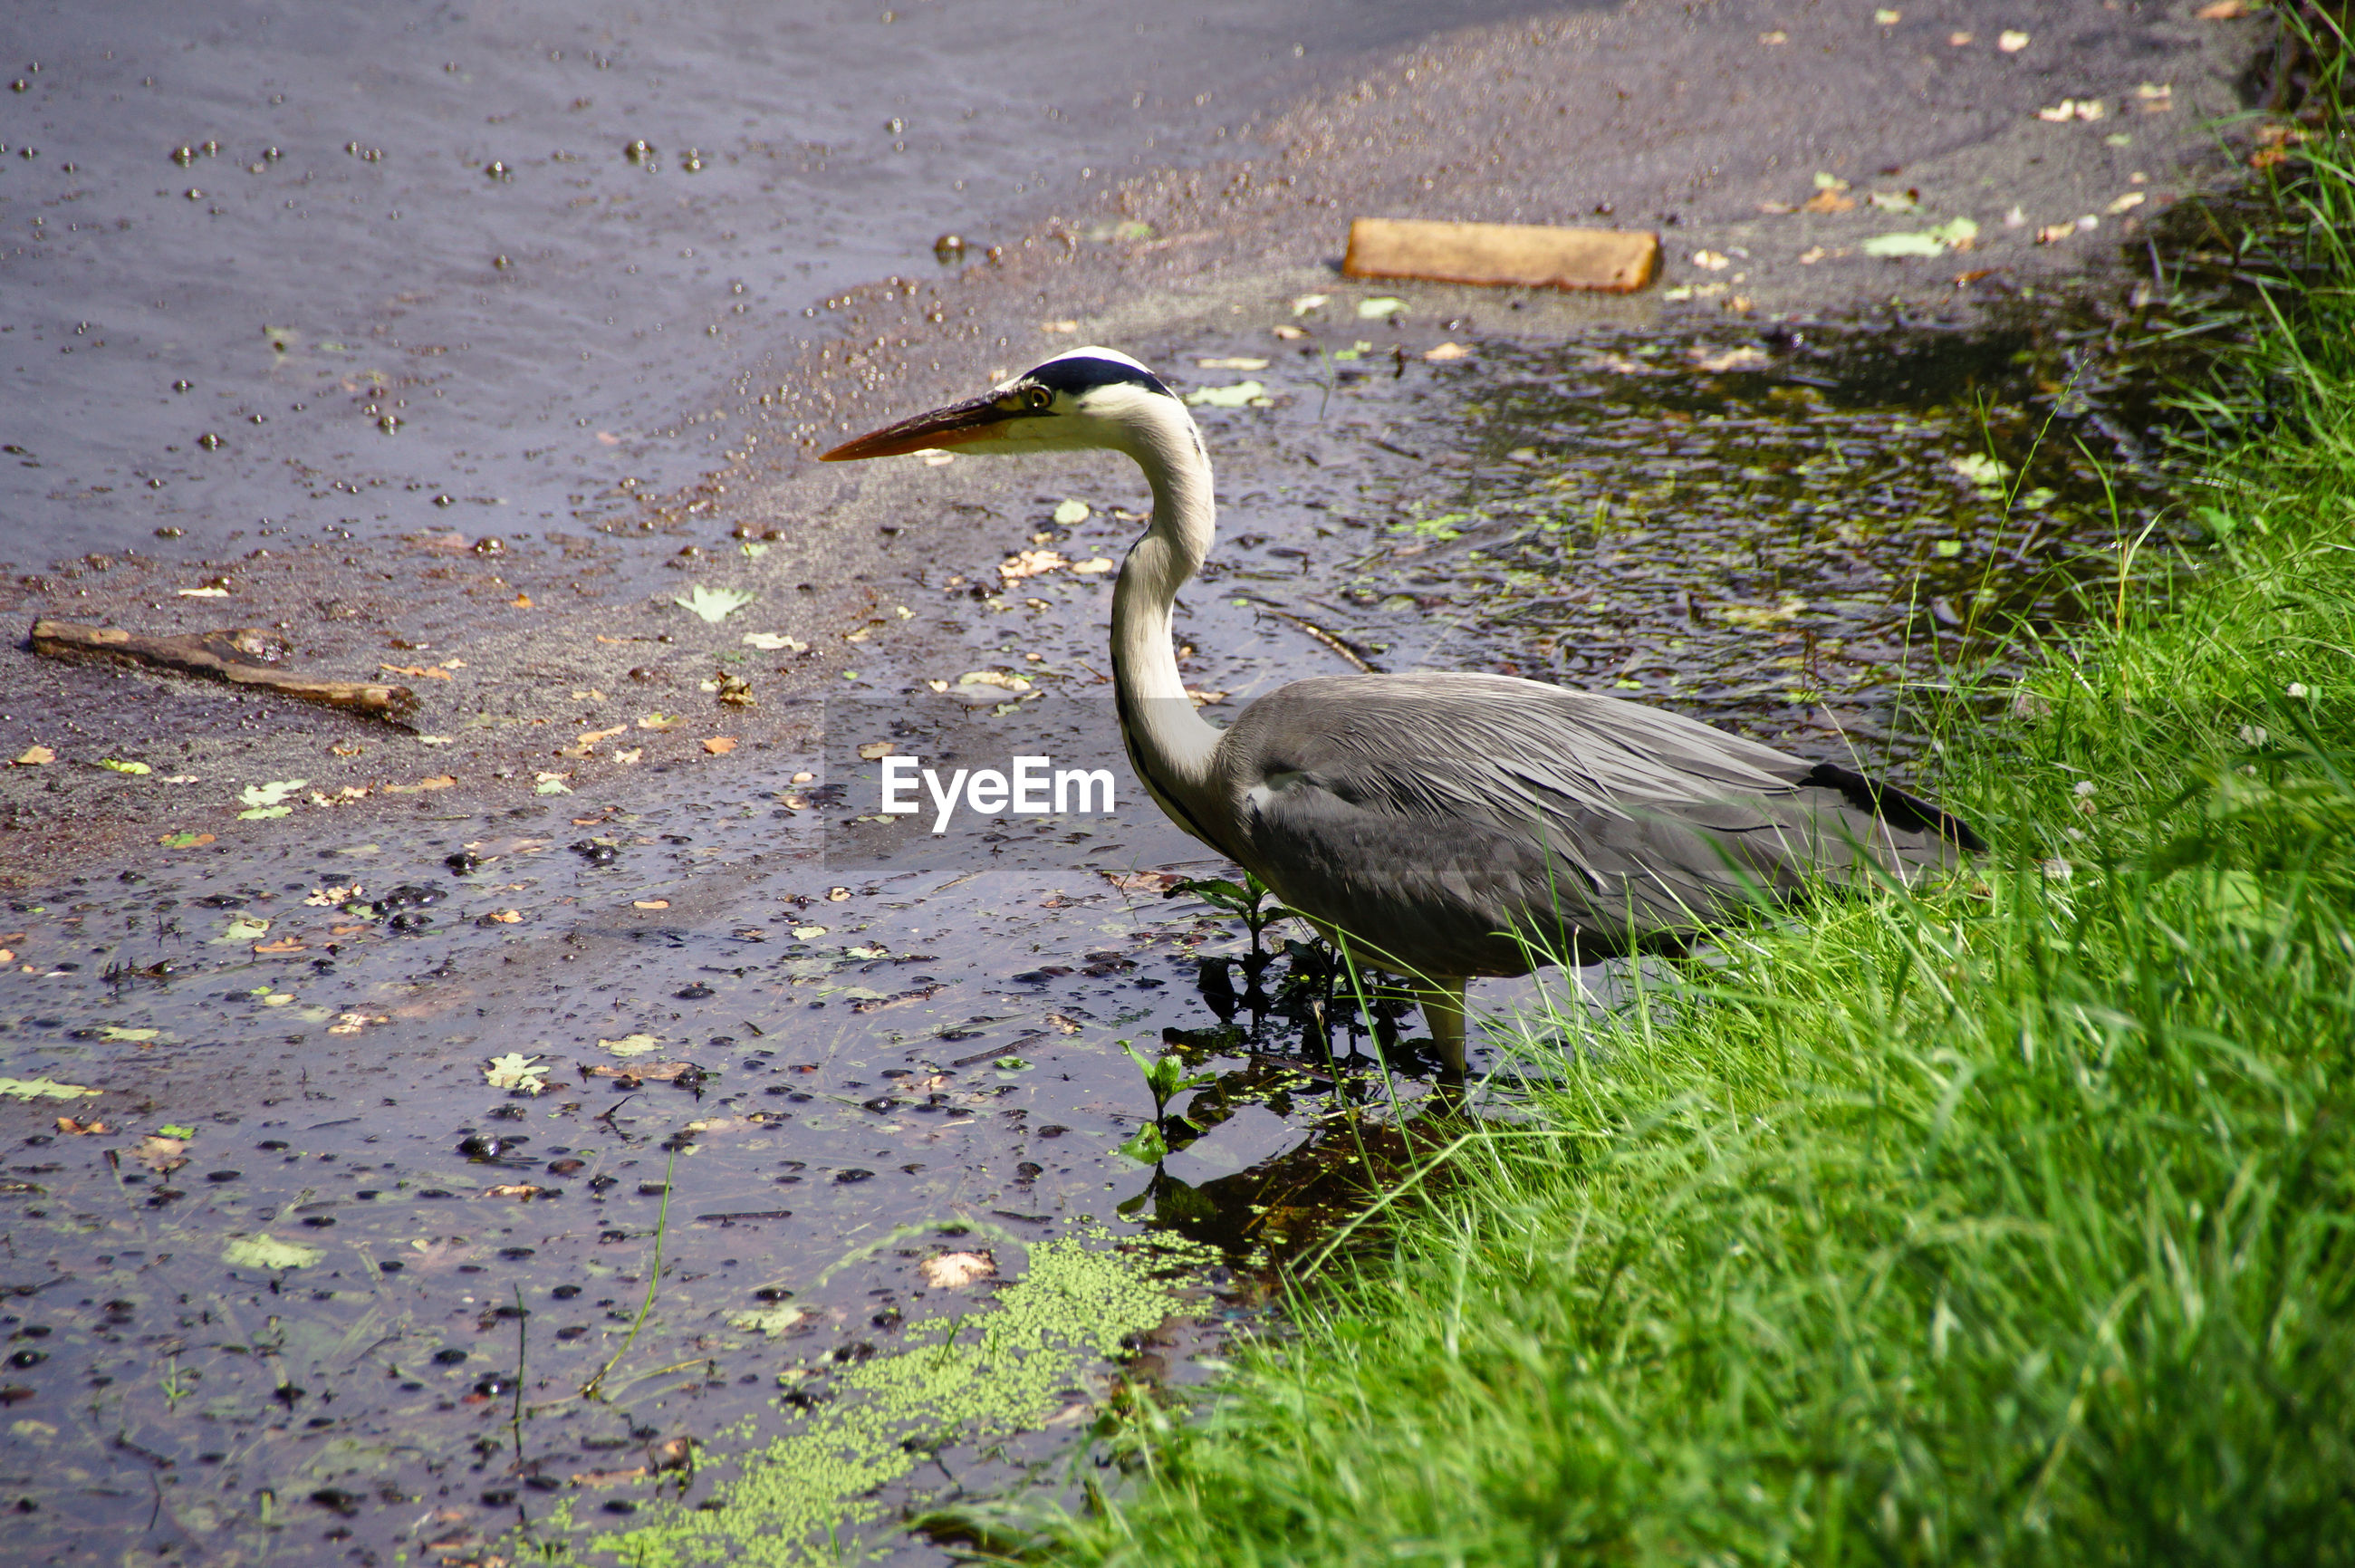 High angle view of gray heron standing at lakeshore